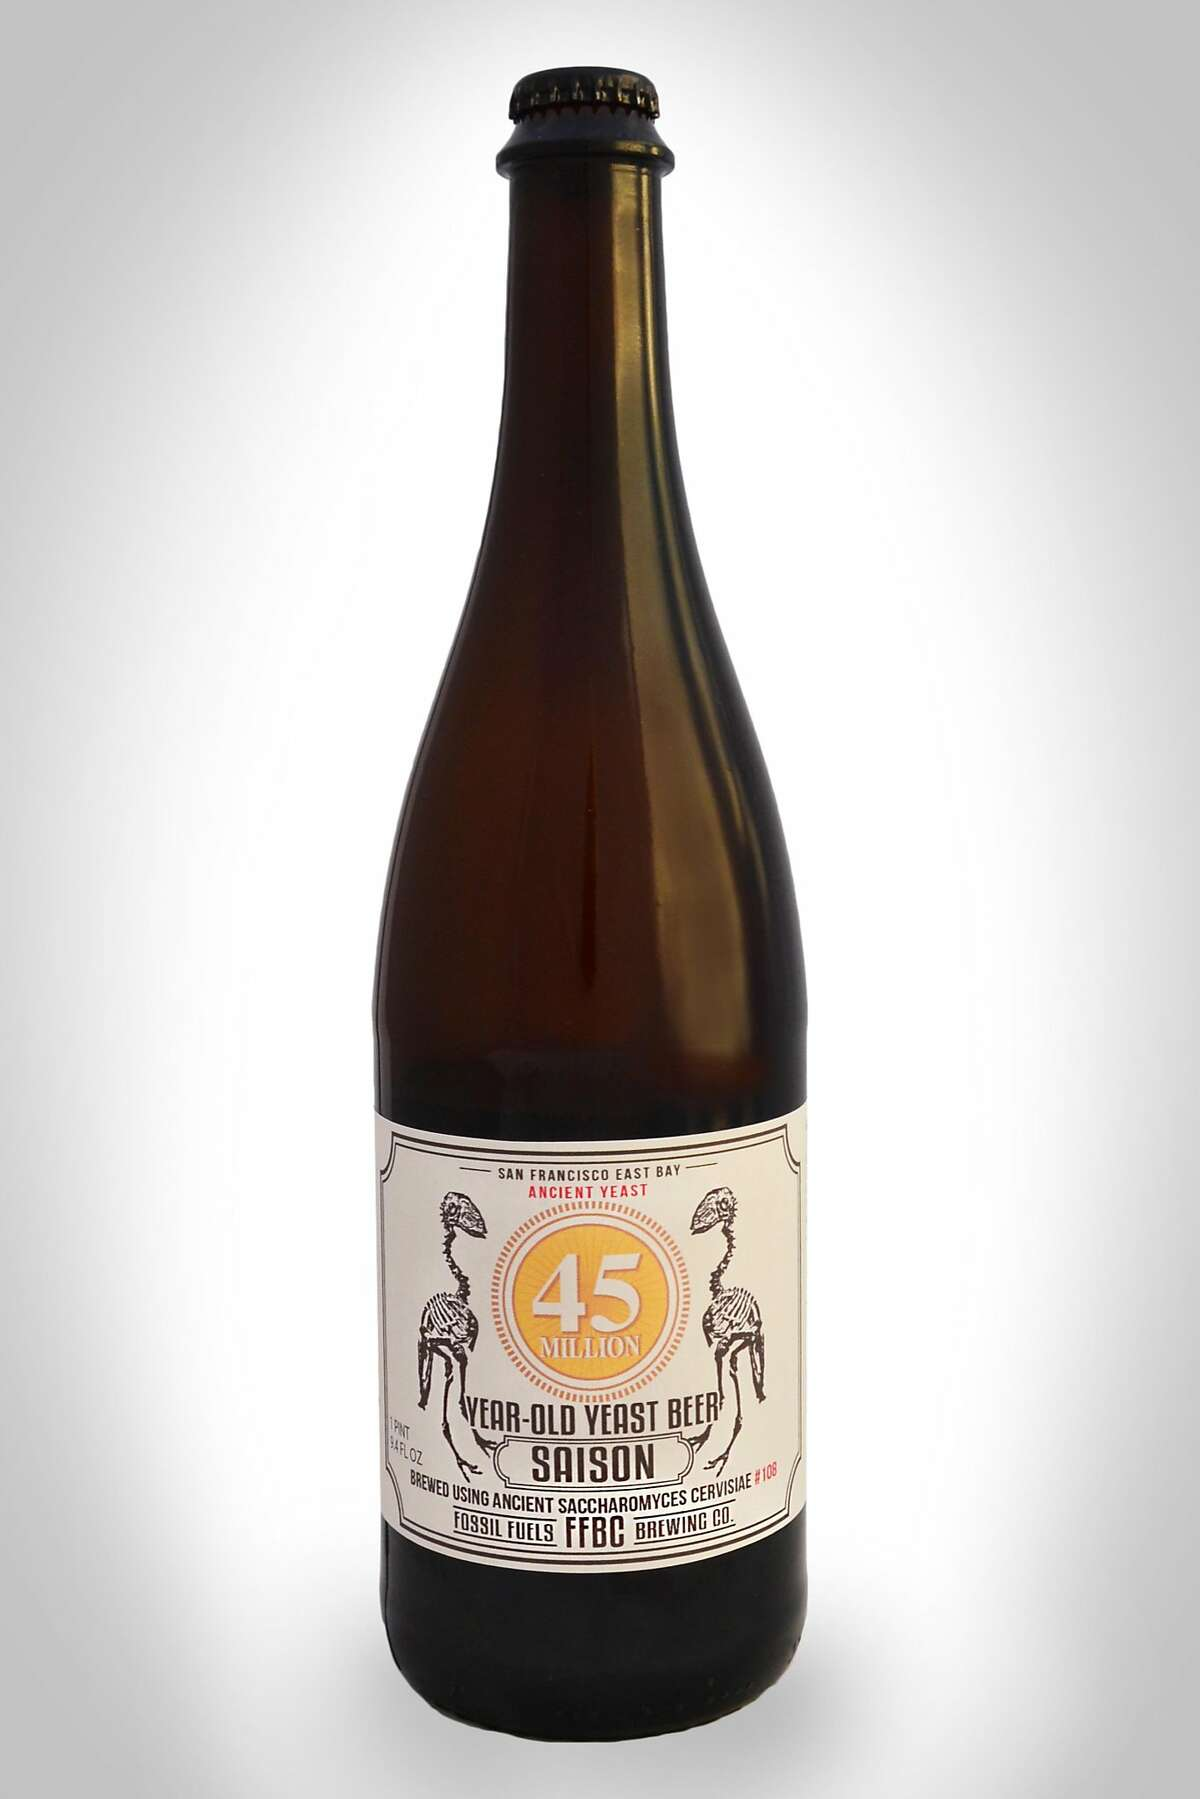 Fossil Fuels Brewing Company and Schubros Brewery to release saison brewed with 45-million-year-old yeast strain